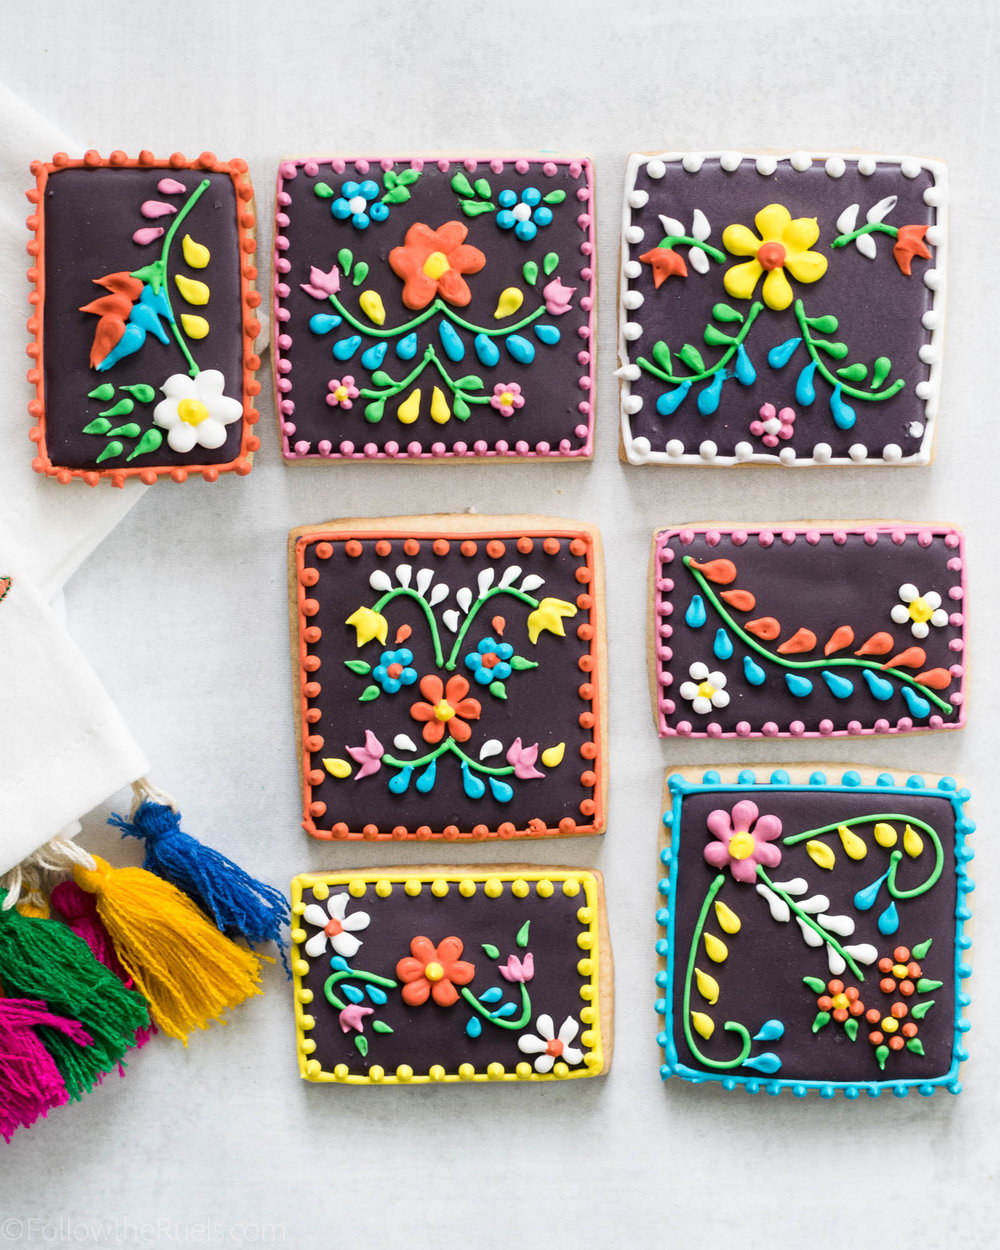 MExican-Embroidery-Cookies-3.jpg